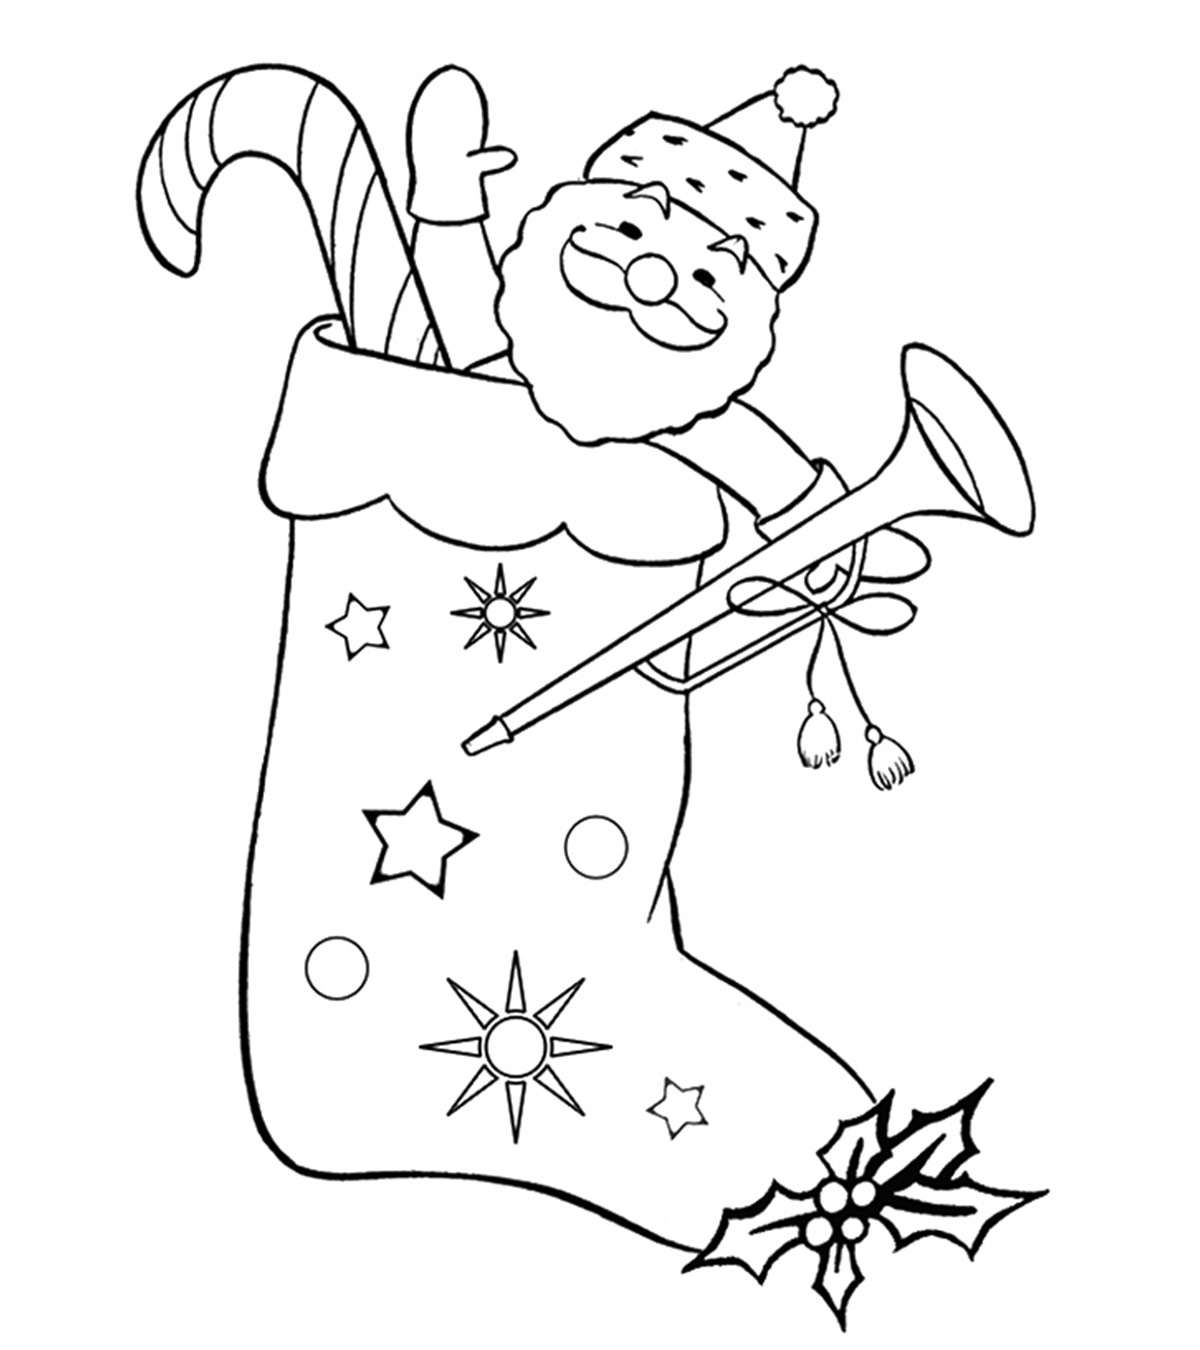 Free clipart many gifts one spirit coloring picture transparent stock Top 25 Free Printable Christmas Stocking Coloring Pages Online picture transparent stock